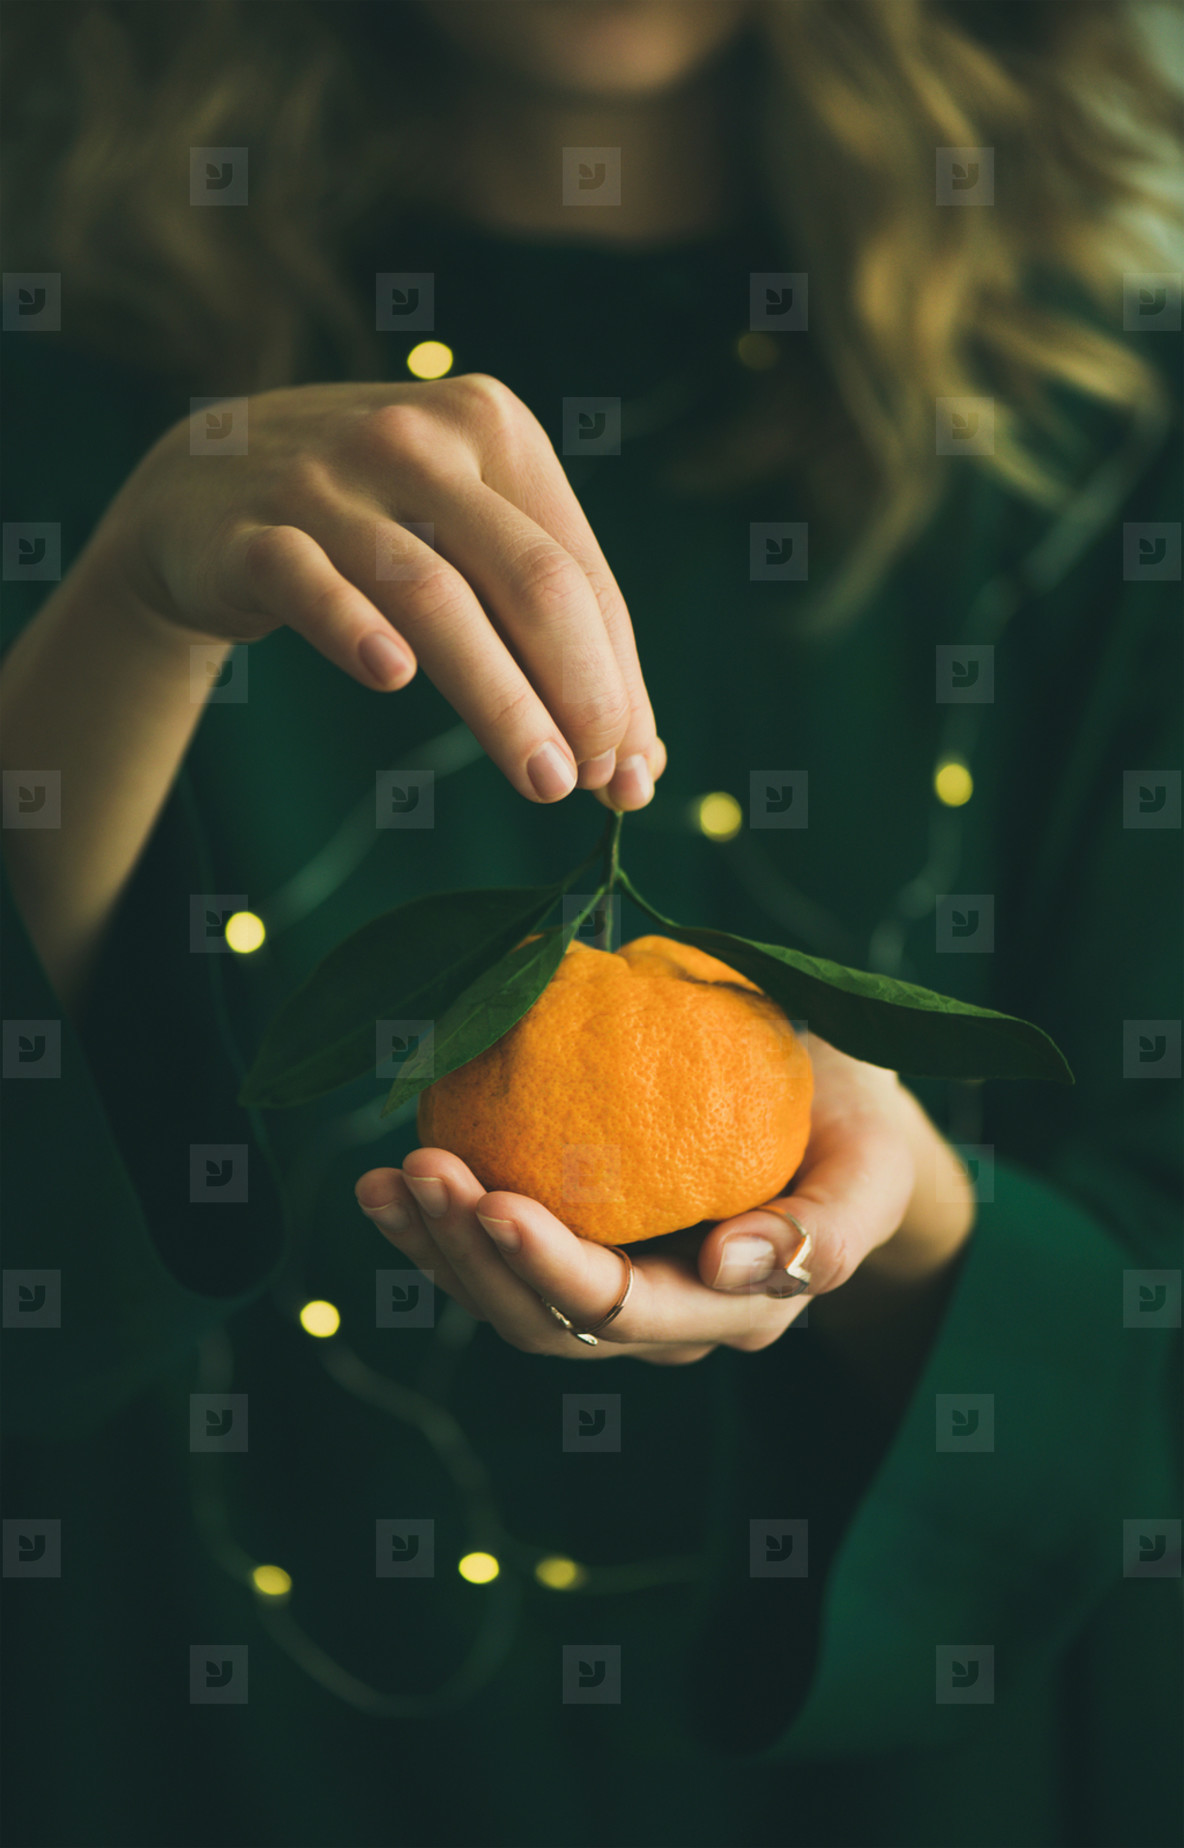 Fresh tangerine fruit in hands of girl wearing green dress